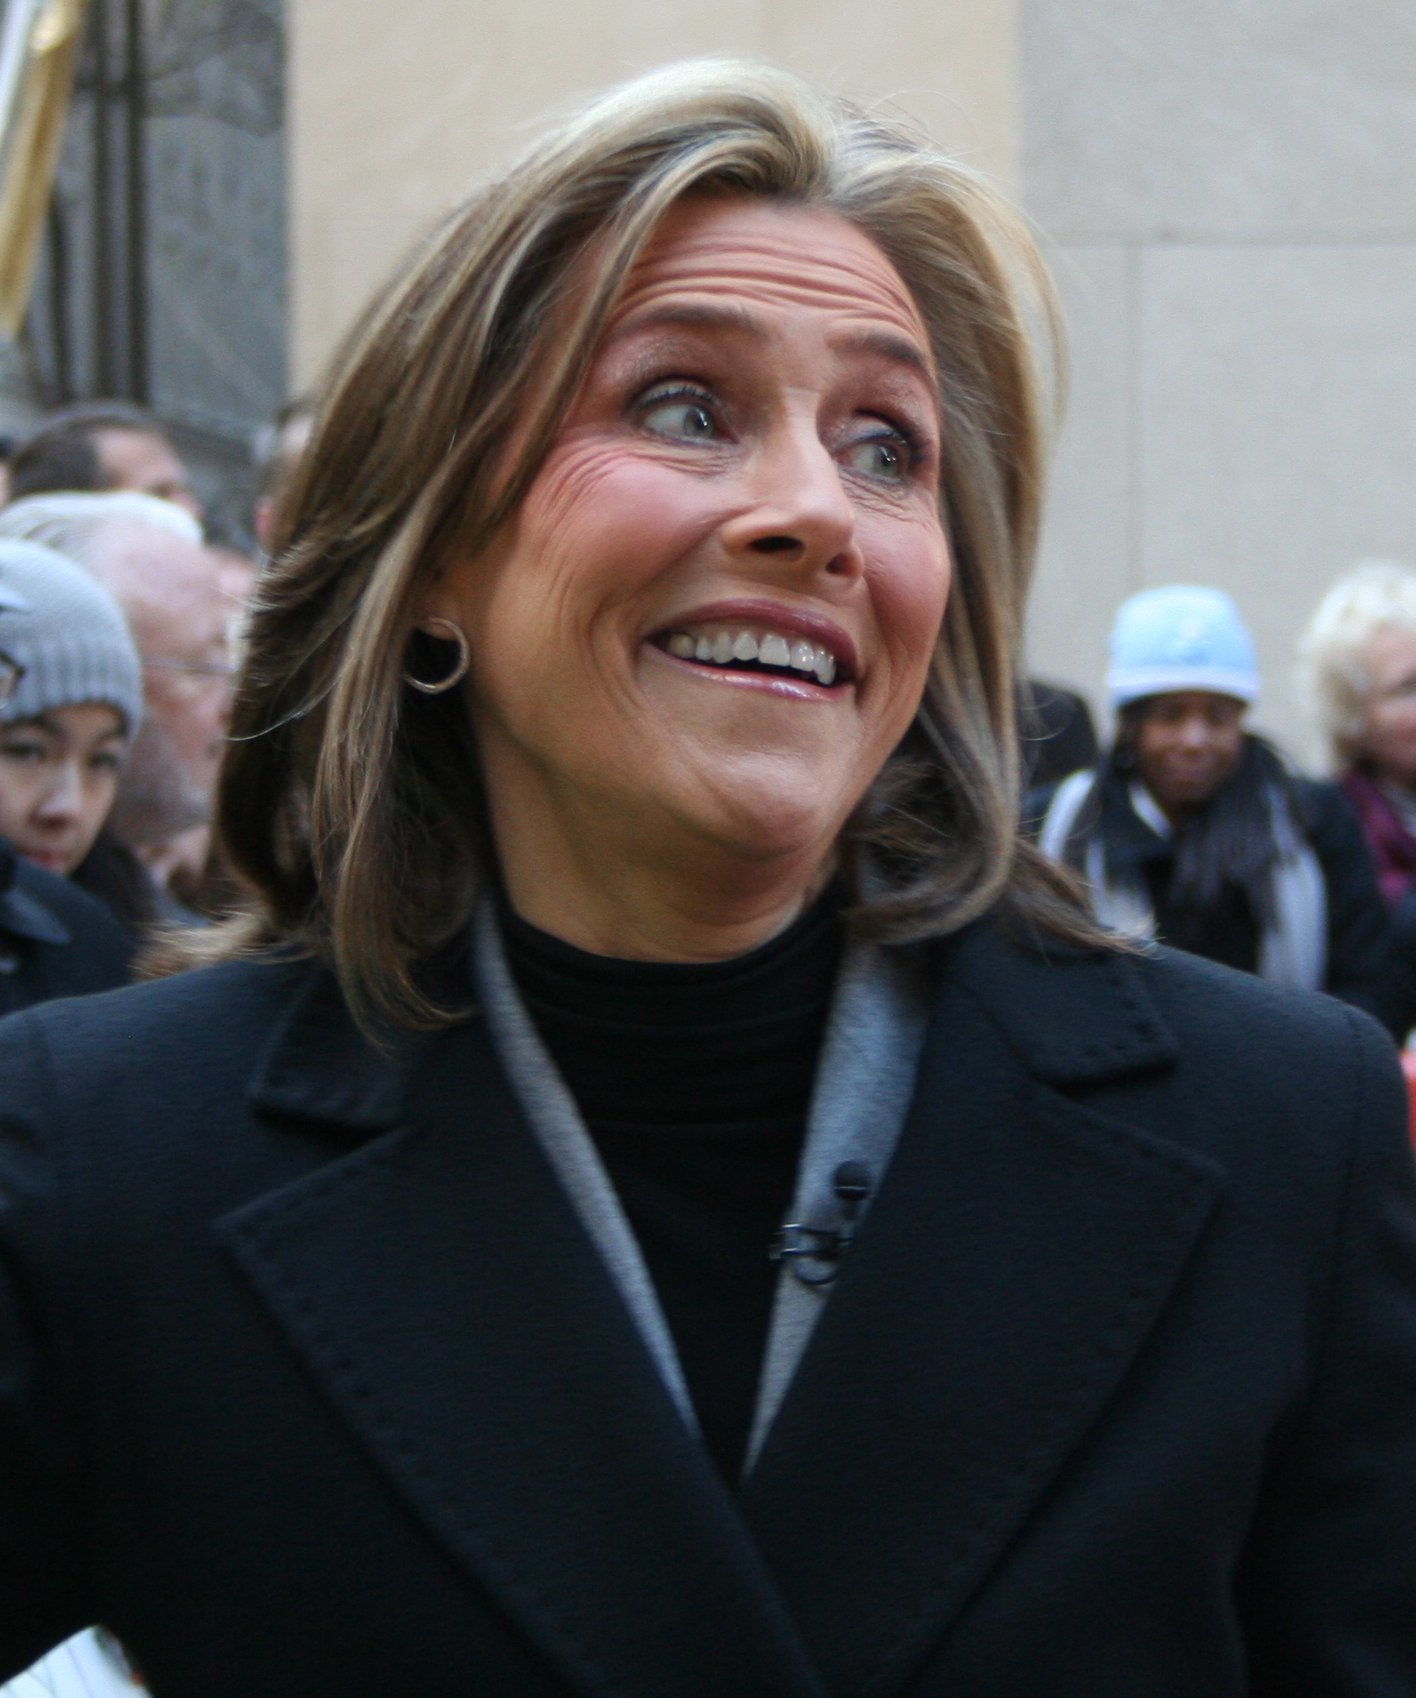 Depiction of Meredith Vieira